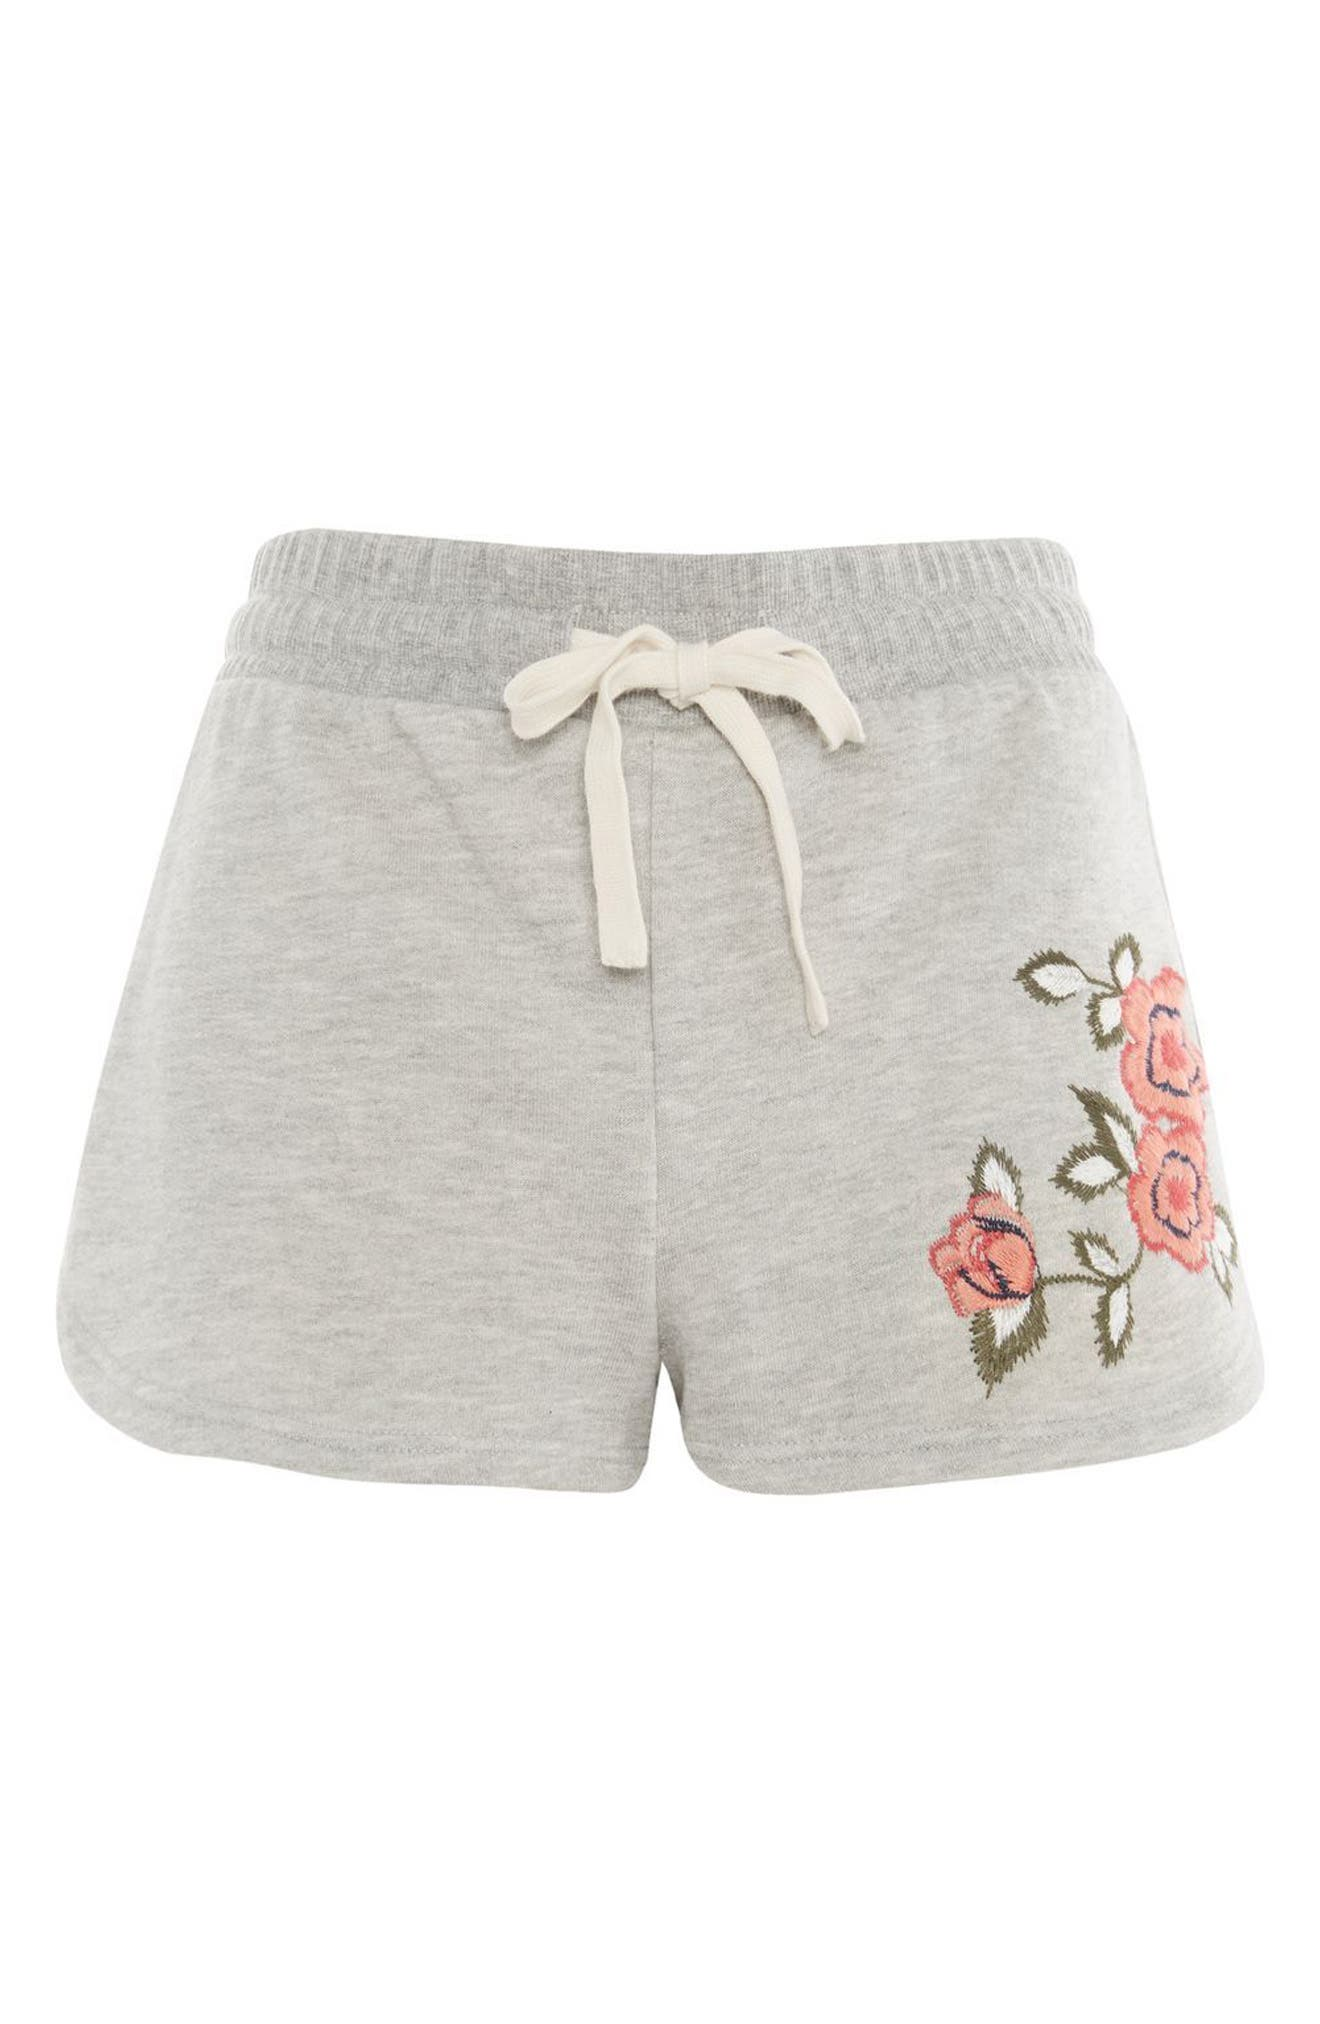 Floral Embroidered Lounge Shorts,                             Alternate thumbnail 3, color,